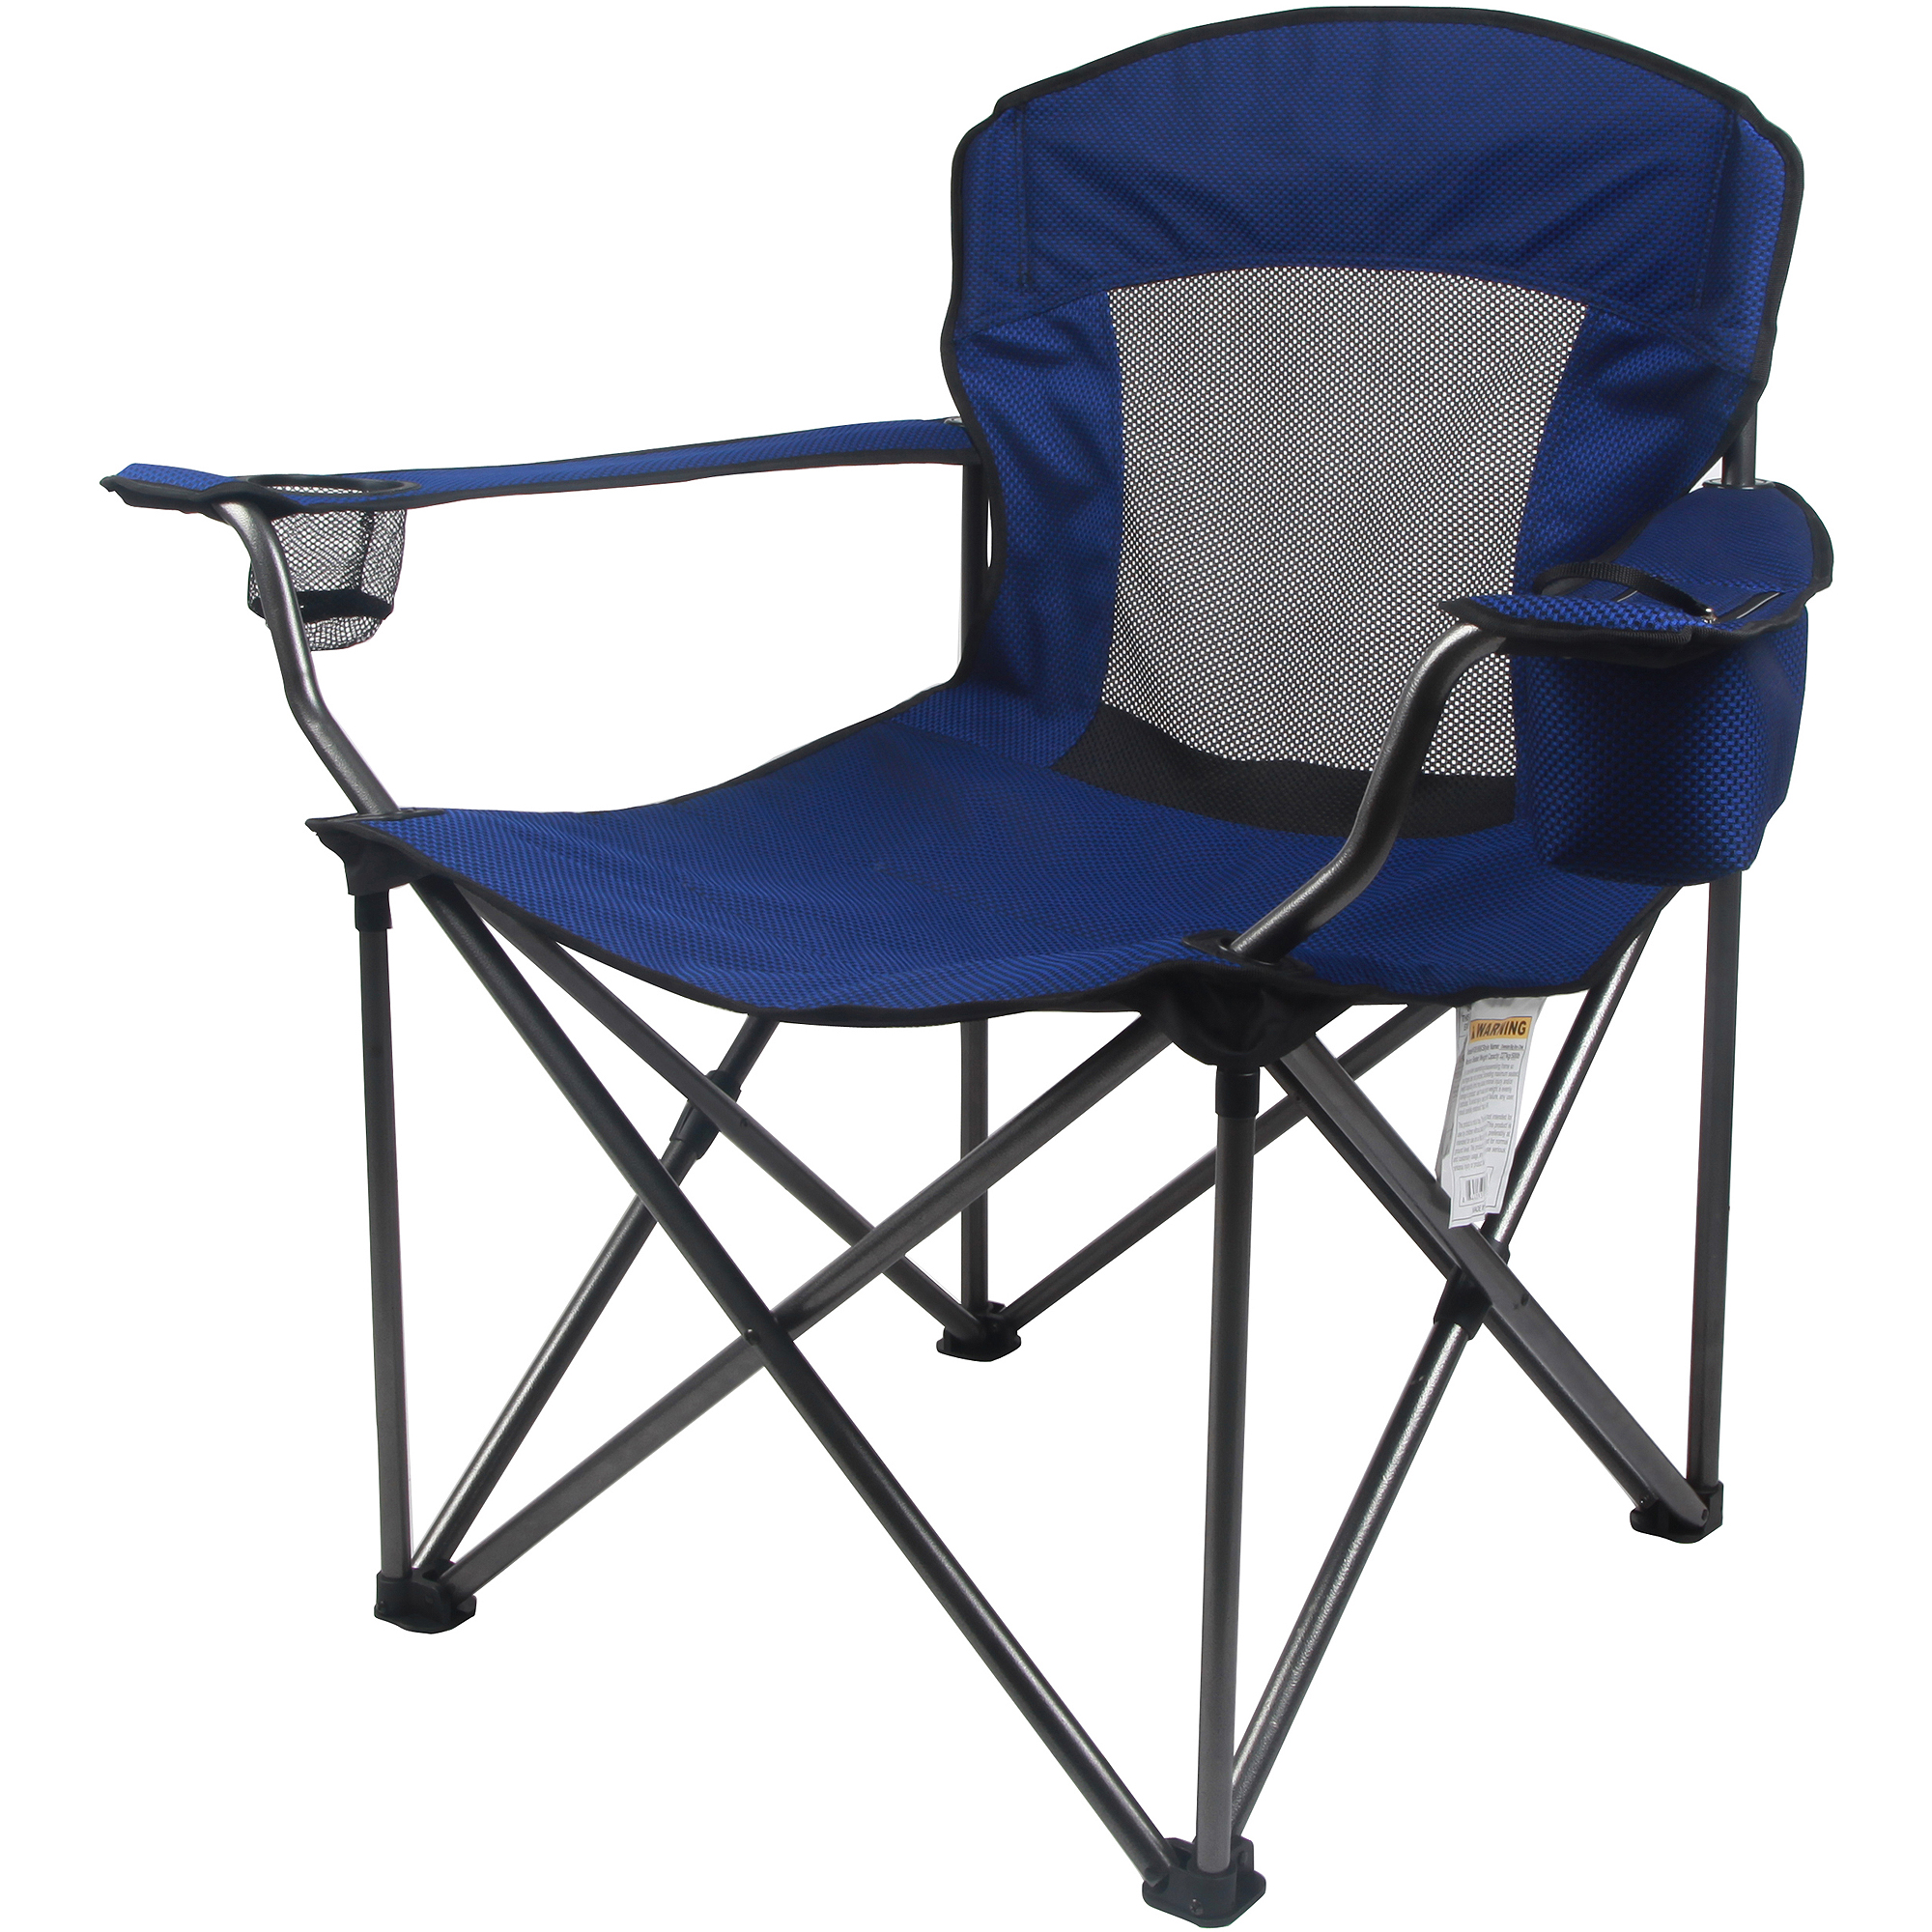 Ozark Trail XXL Sized Comfortable Mesh Outdoor Chair